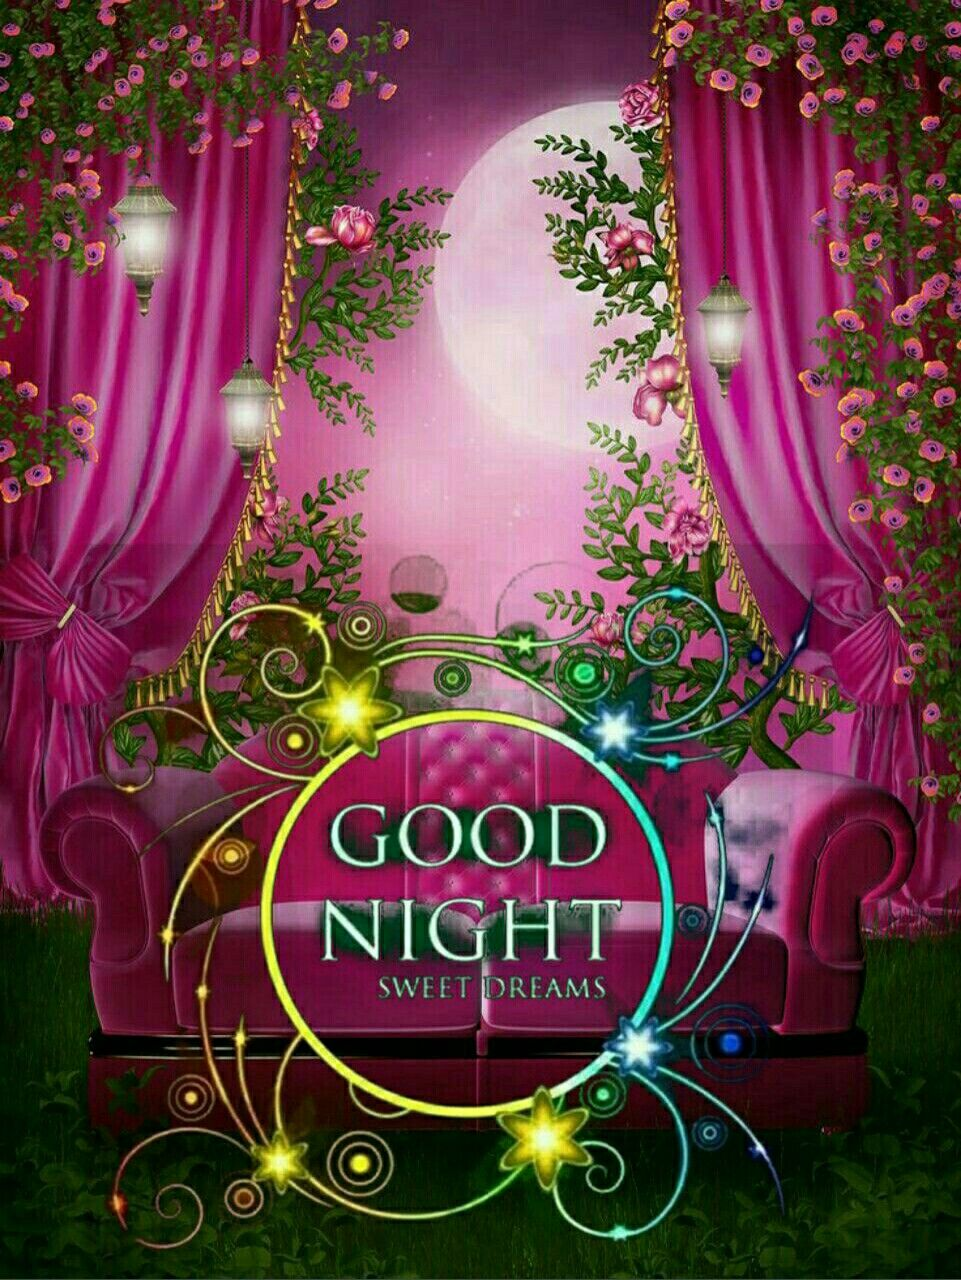 Good night sister and yours, sweet dreams